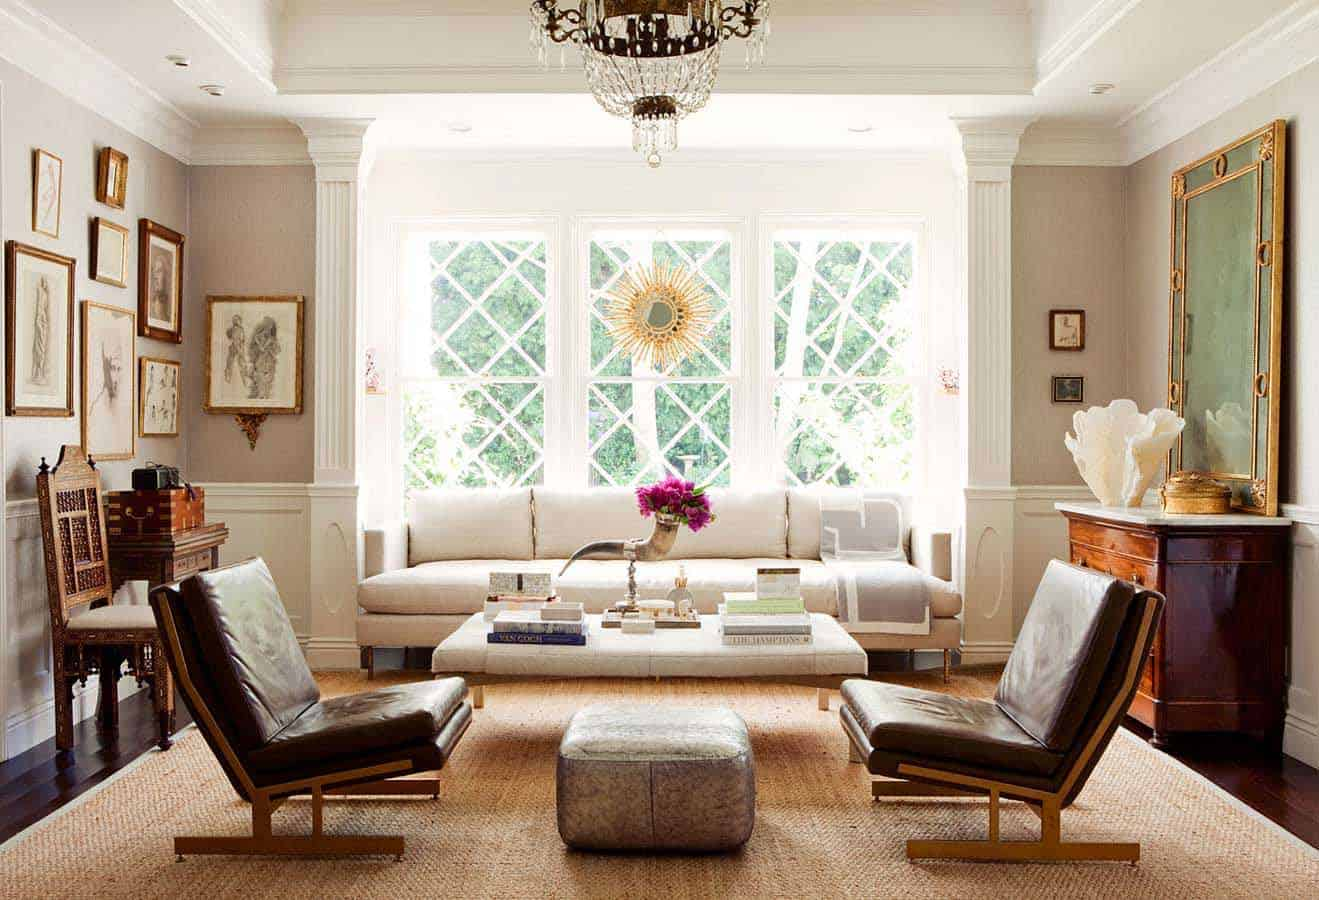 Arranging living room furniture kristina wolf design Living room arrangements